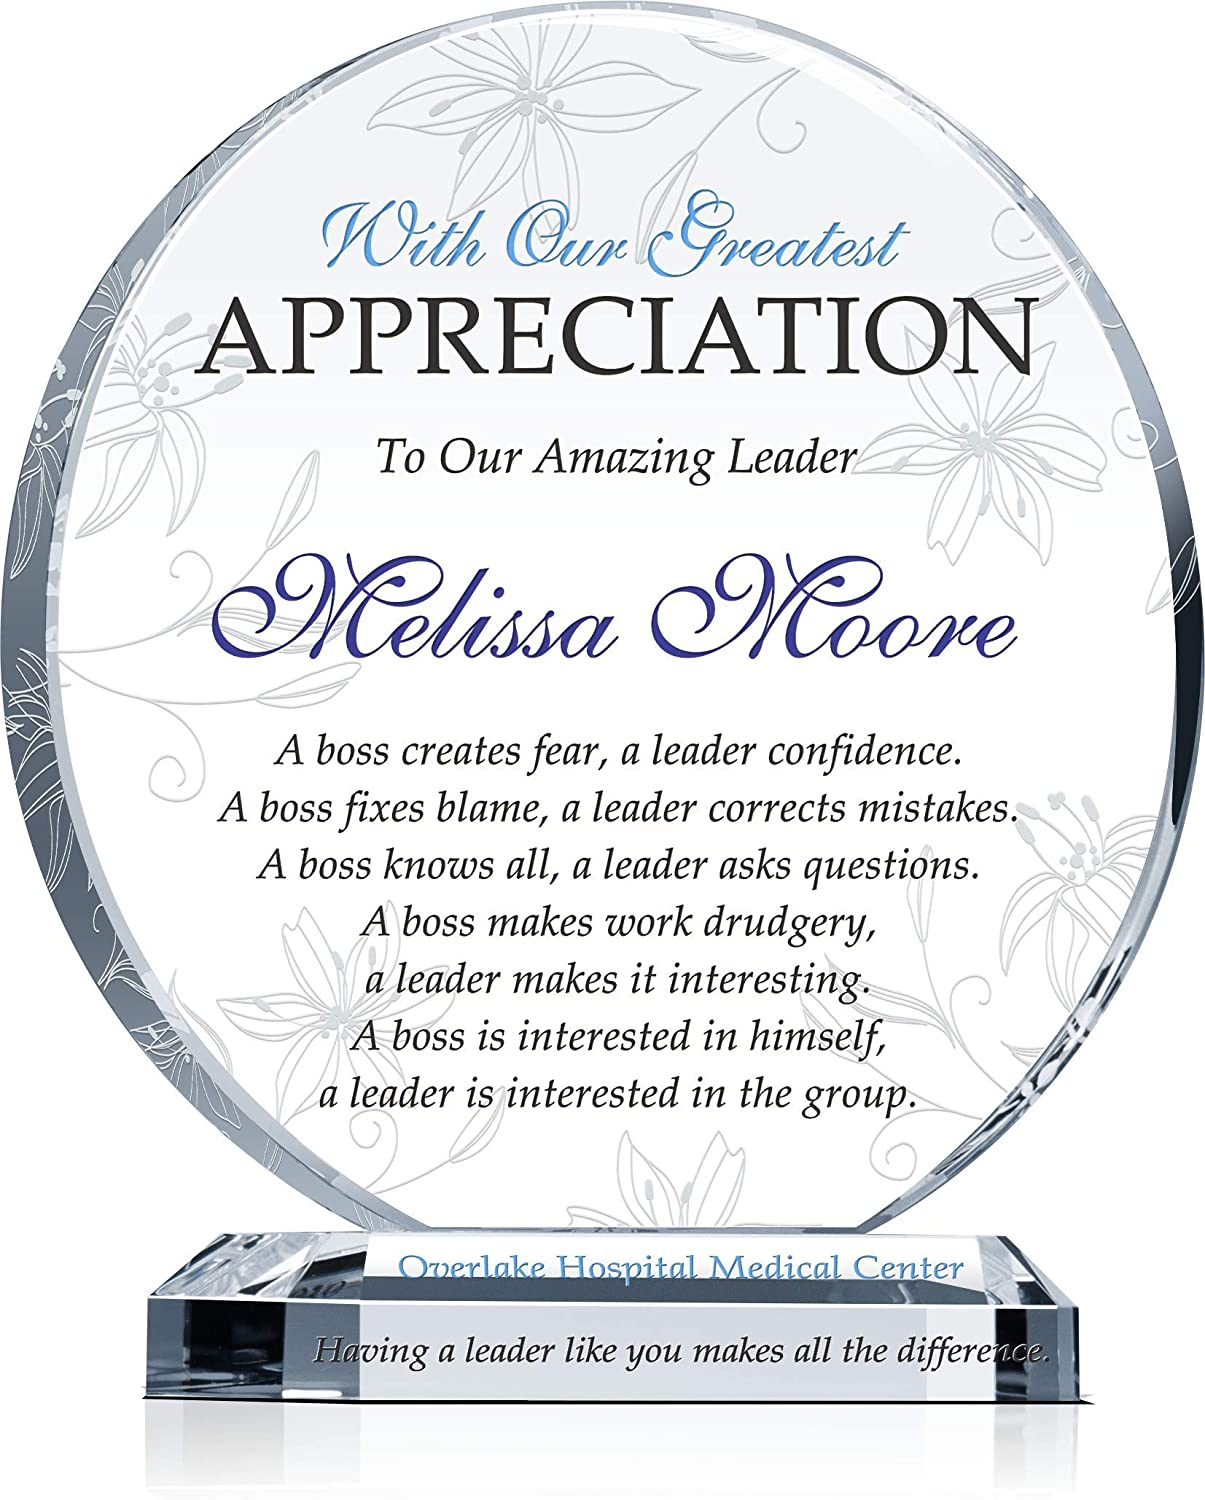 Amazon Com Personalized Boss Appreciation Gift Plaque For Man Or Woman Customized With Boss Name And Leadership Quote Unique Boss Award For Him Or Her On Retirement Farewell Birthday Christmas Boss Day M